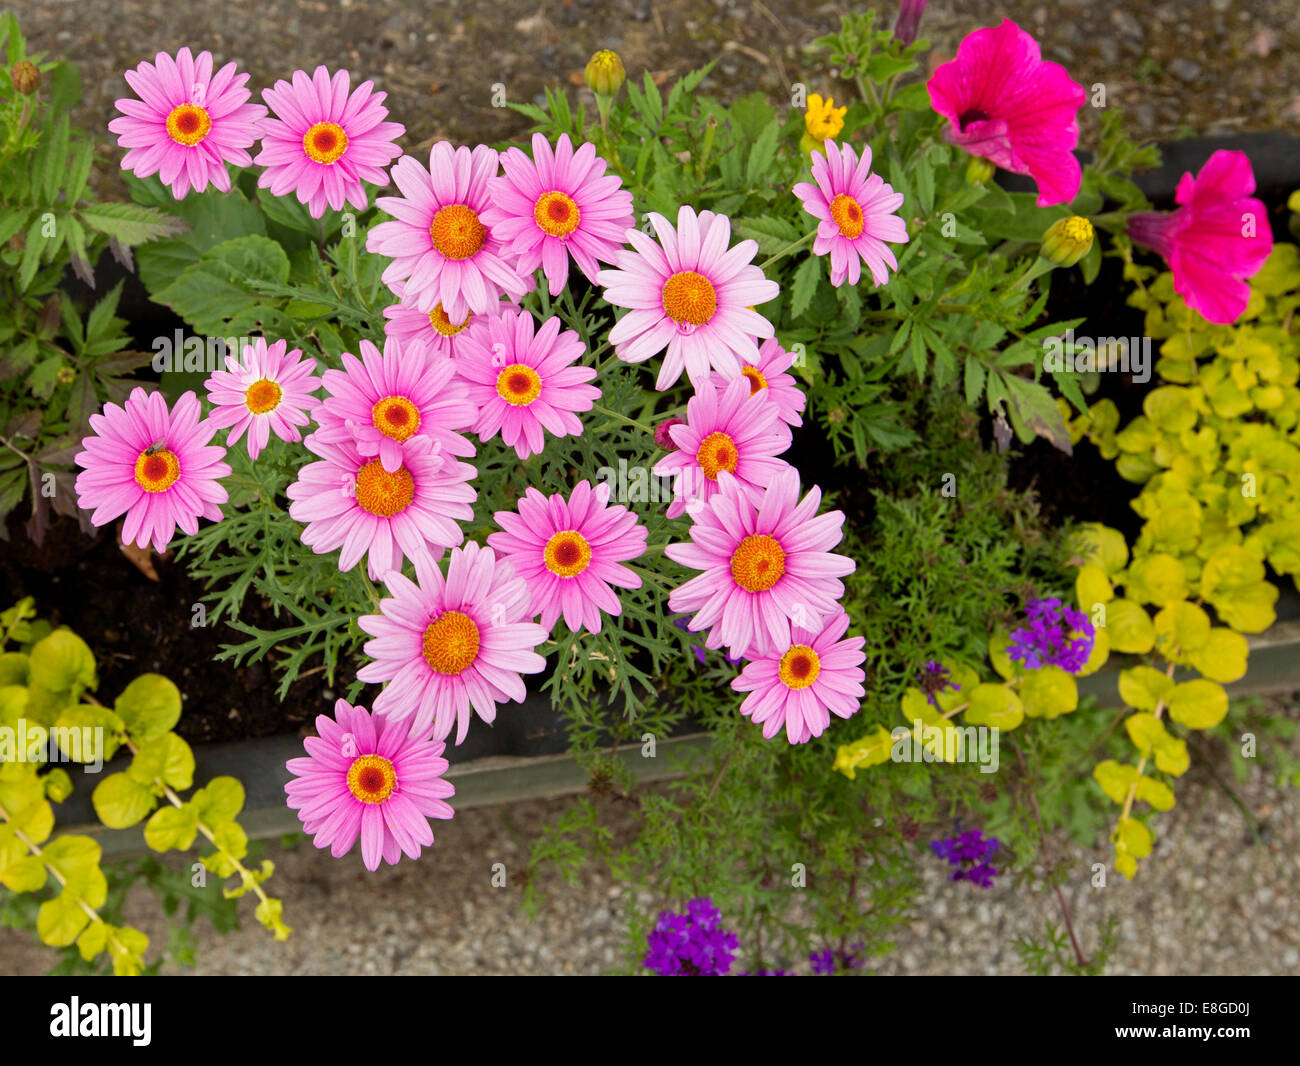 Cluster of vivid pink flowers with yellow red centres and fern cluster of vivid pink flowers with yellow red centres and fern like foliage of leucanthemum daisies with red petunias and purple verbena mightylinksfo